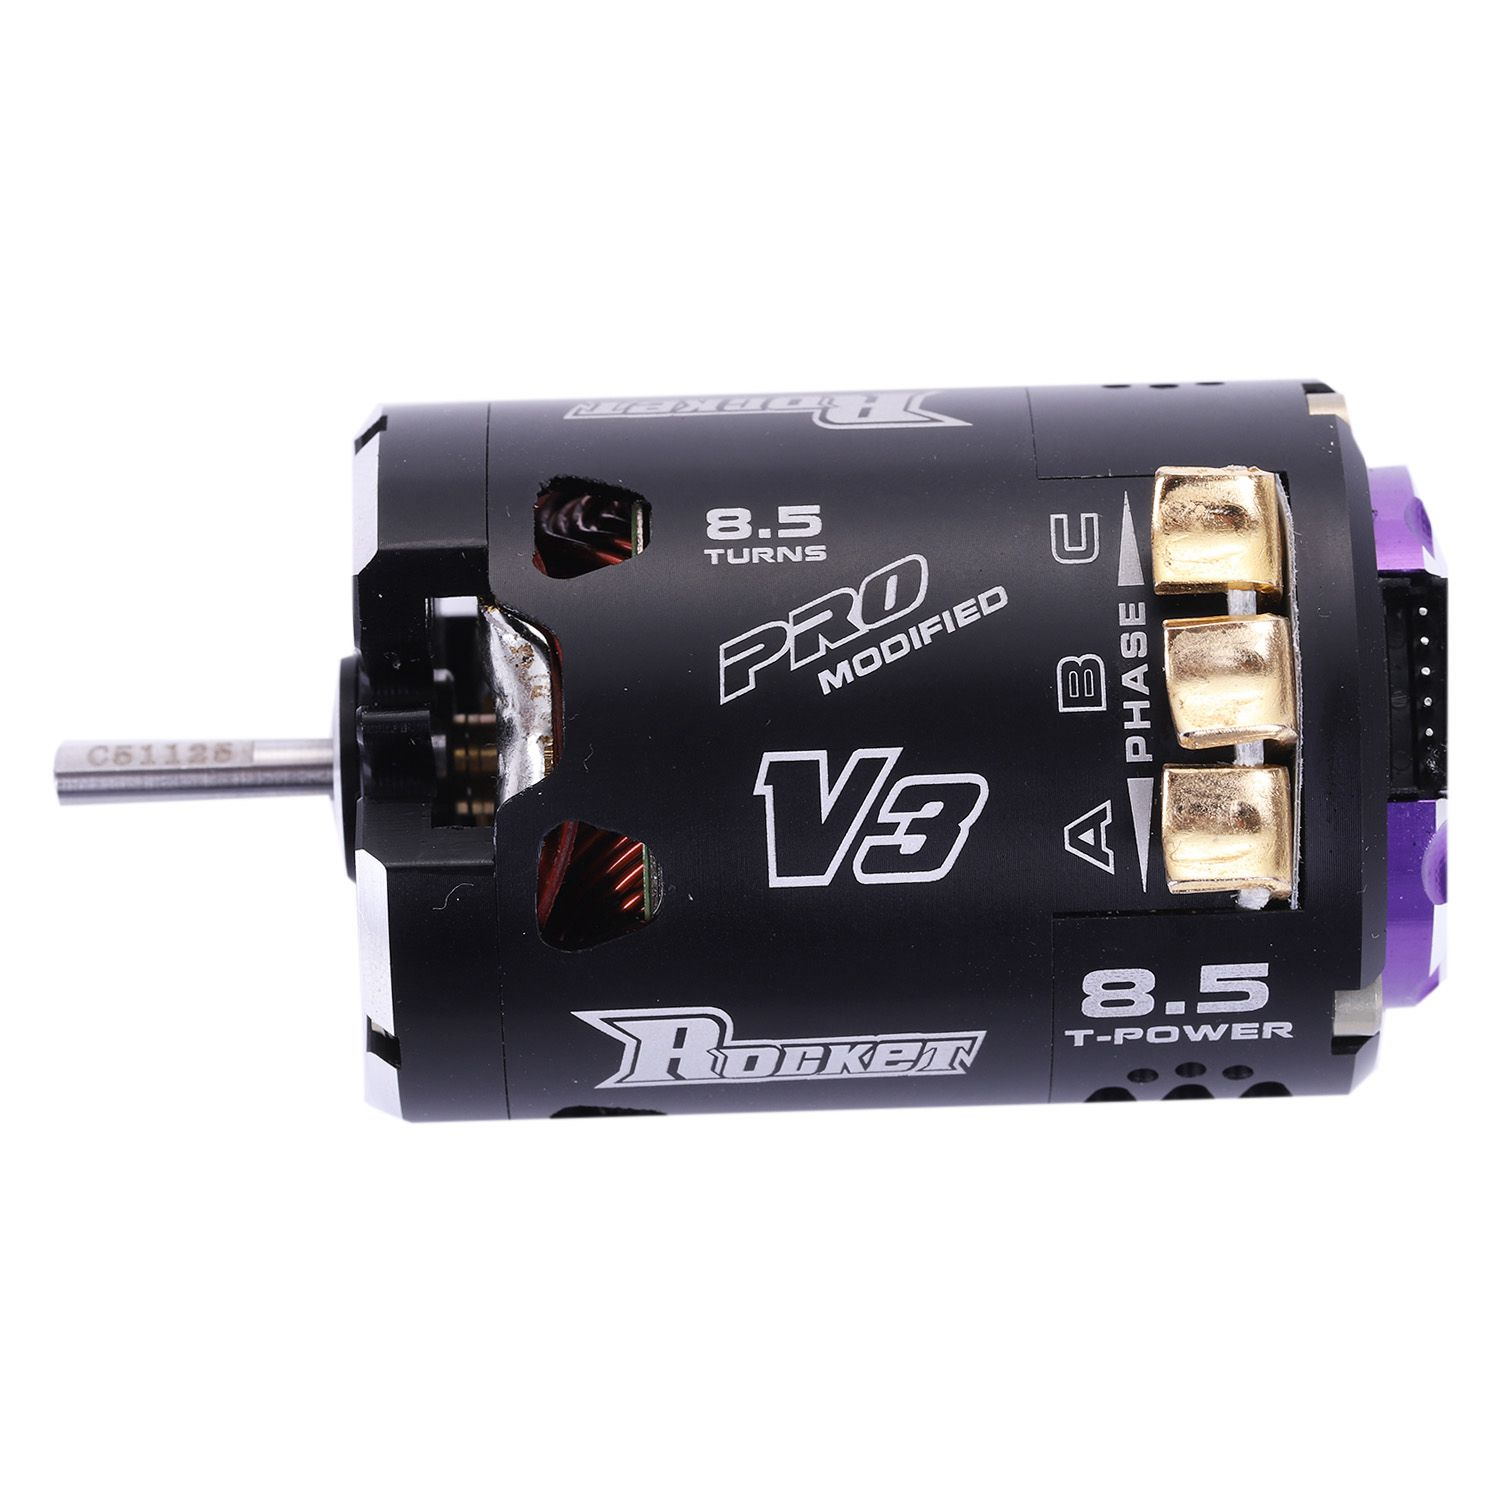 Superar HOBBY 540 de 8,5 T de 4250KV V3 Sensored Motor sin escobillas modificado para 1/10 RC coche camión-in Partes y accesorios from Juguetes y pasatiempos on AliExpress - 11.11_Double 11_Singles' Day 1